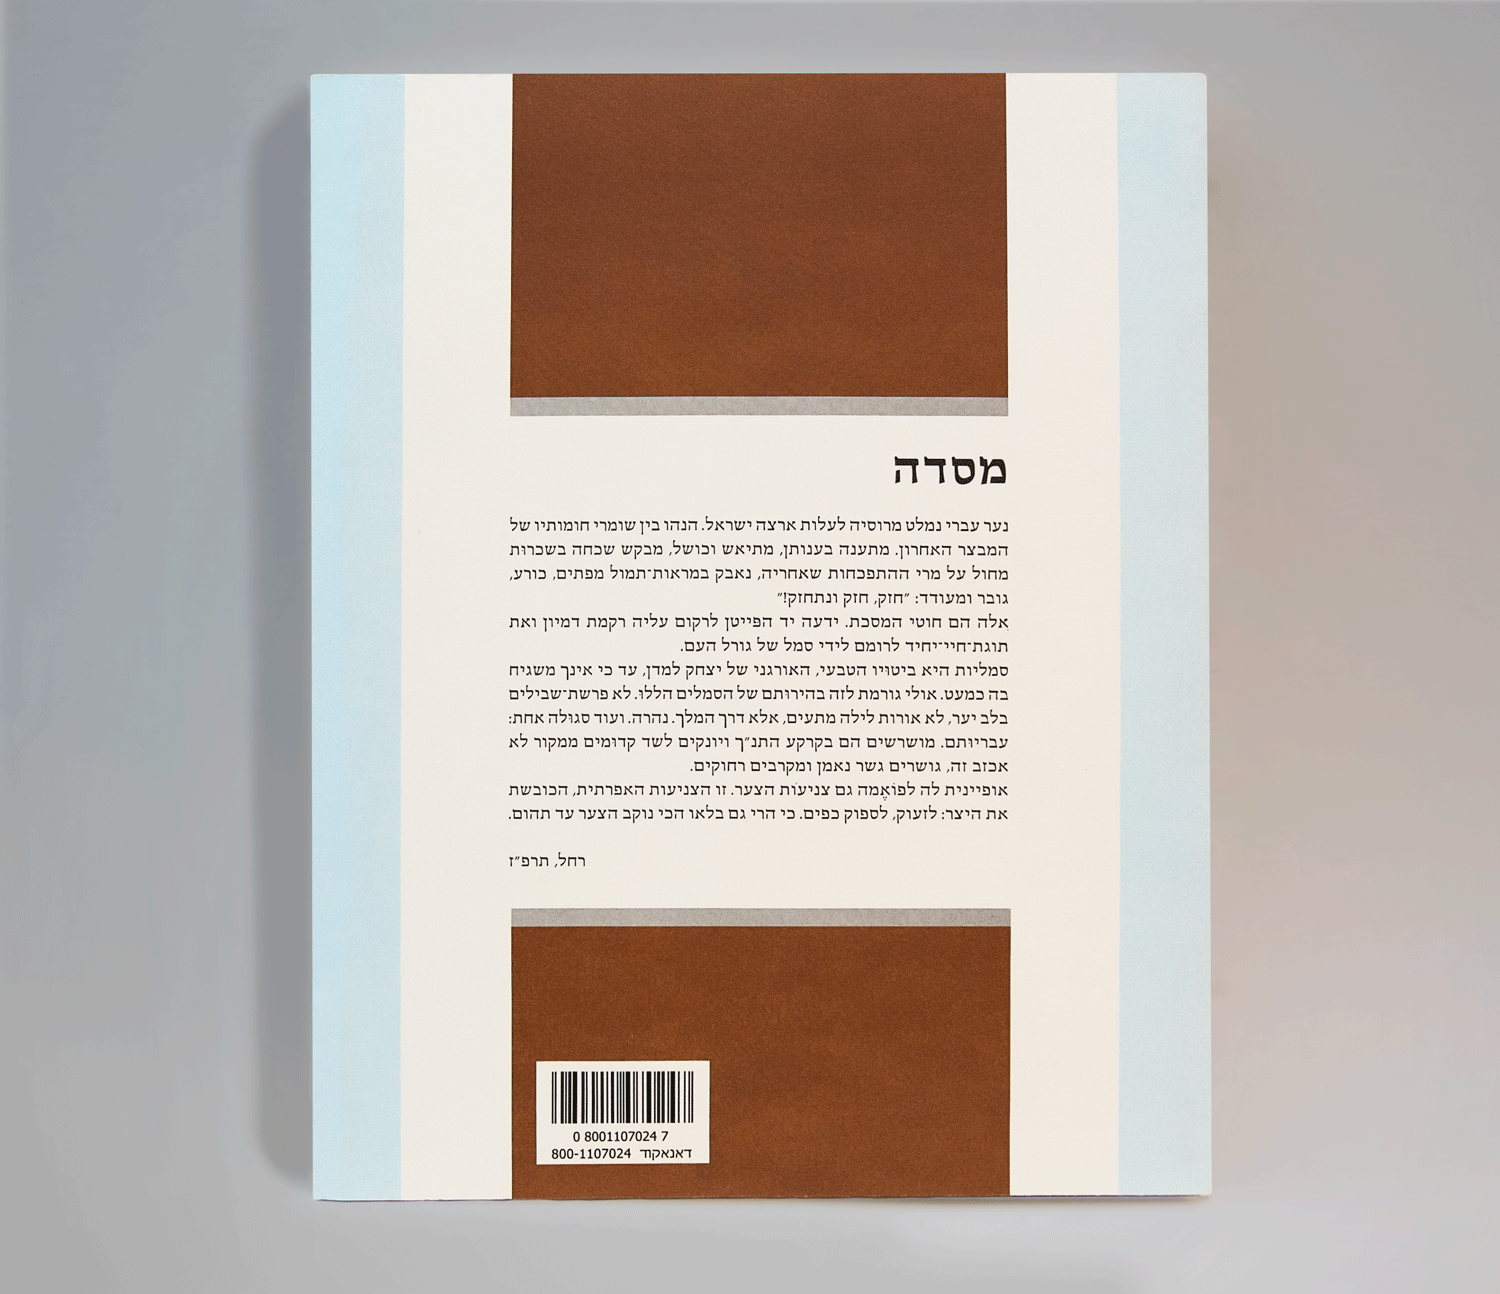 http://bigeyes.co.il/wp-content/uploads/2019/04/masada-back-long.png